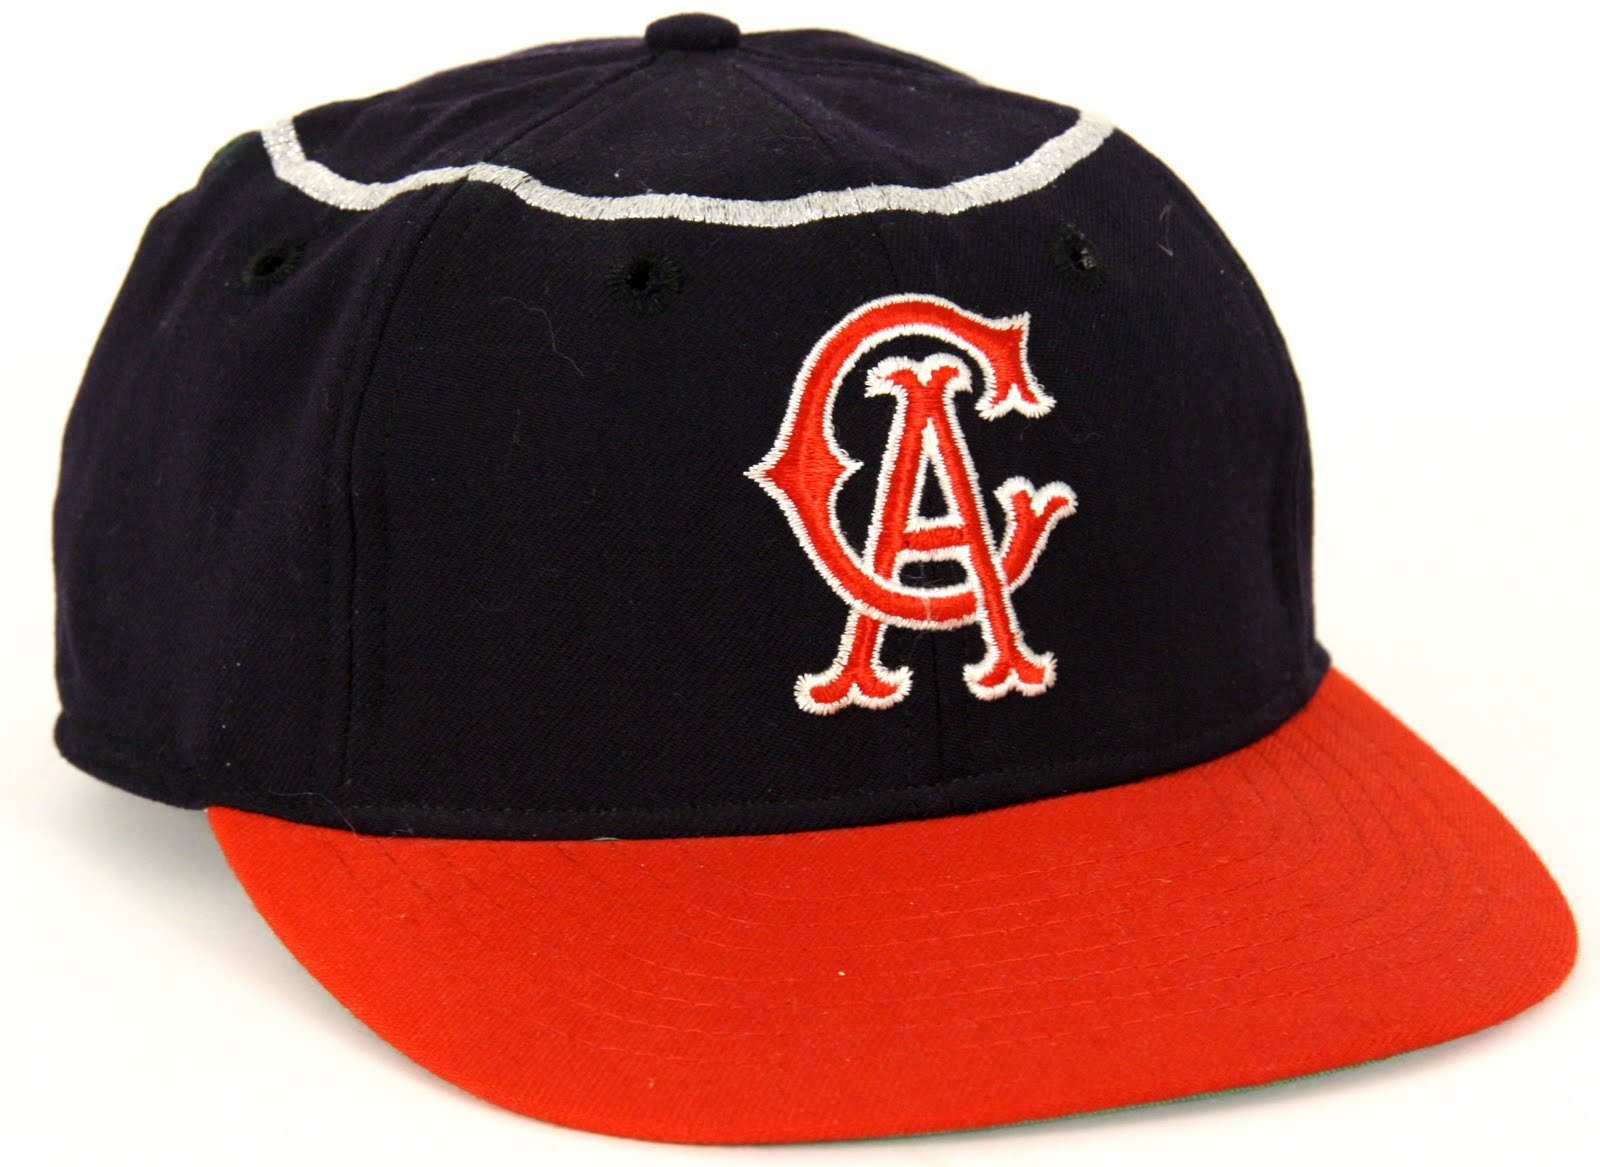 classic threads los angeles angels of anaheim baseball essential old school angels hat halo stayed [ 1600 x 1167 Pixel ]